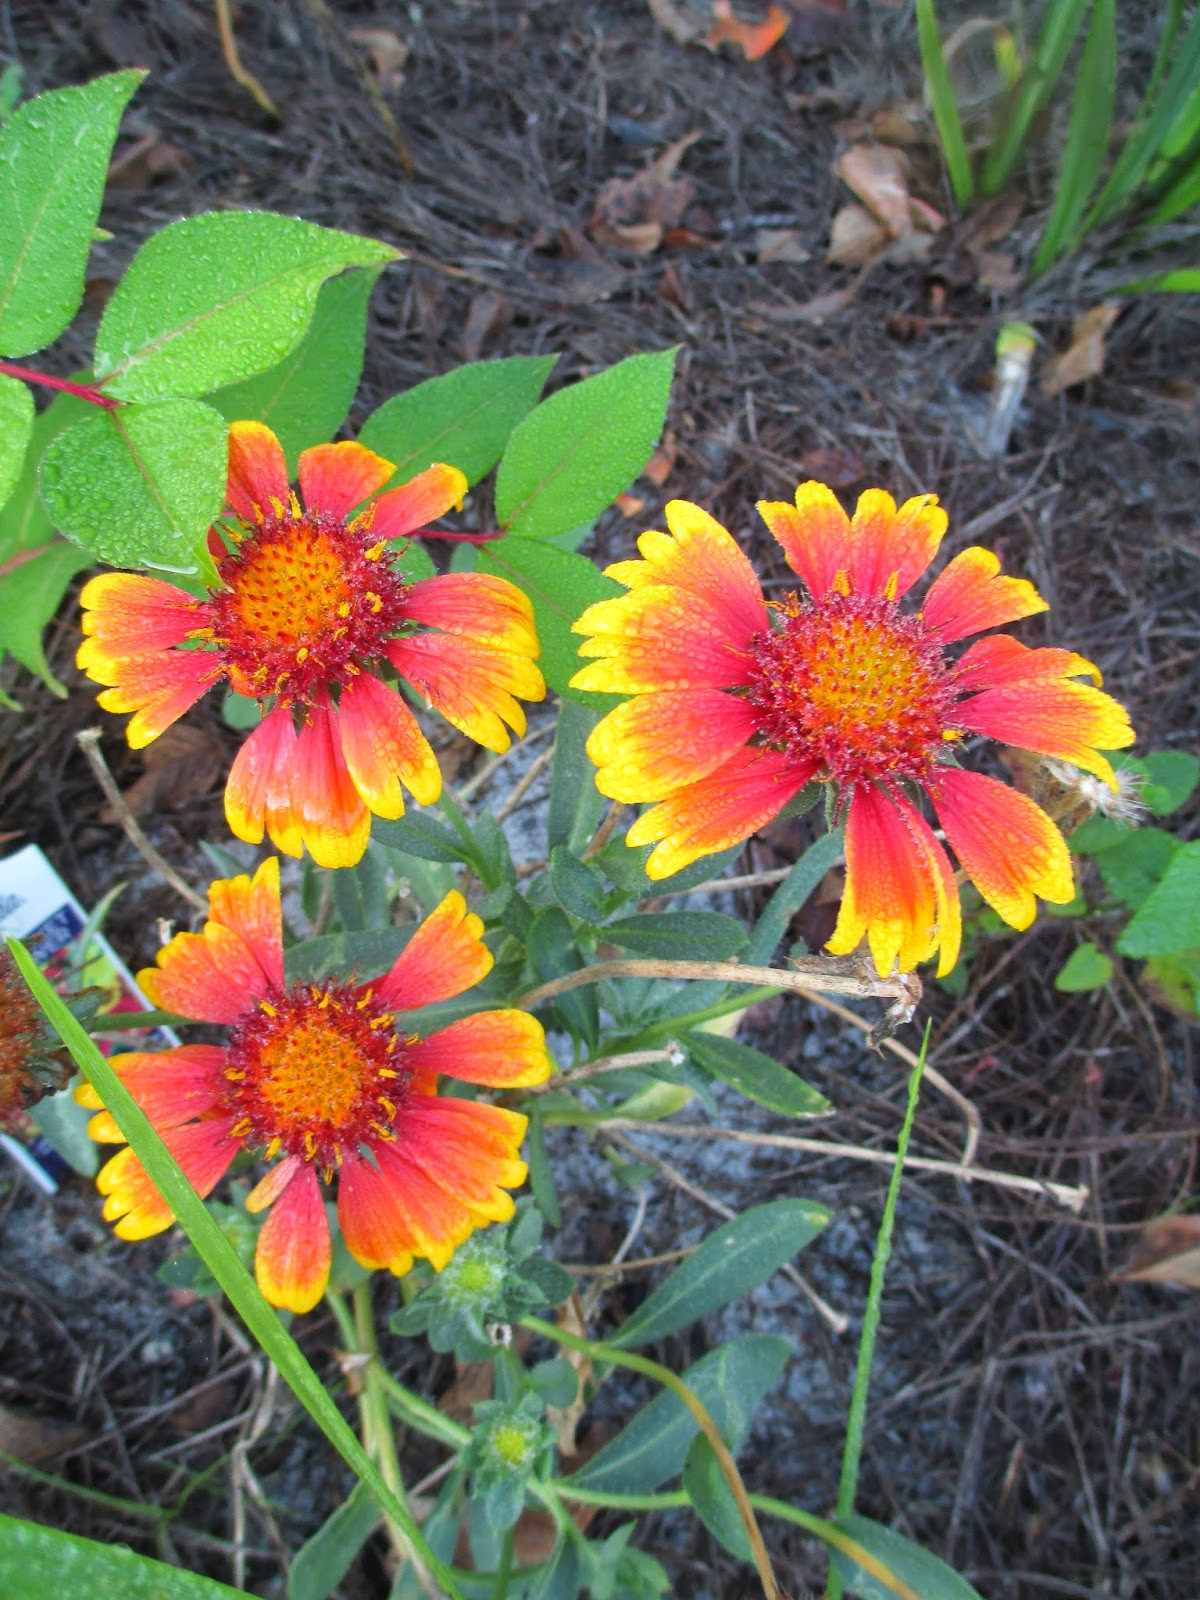 Blanketflower is a sun loving annual that grows well in zones 3 11 Its brilliant red orange and yellow blooms are reminiscent of a beautiful watercolor